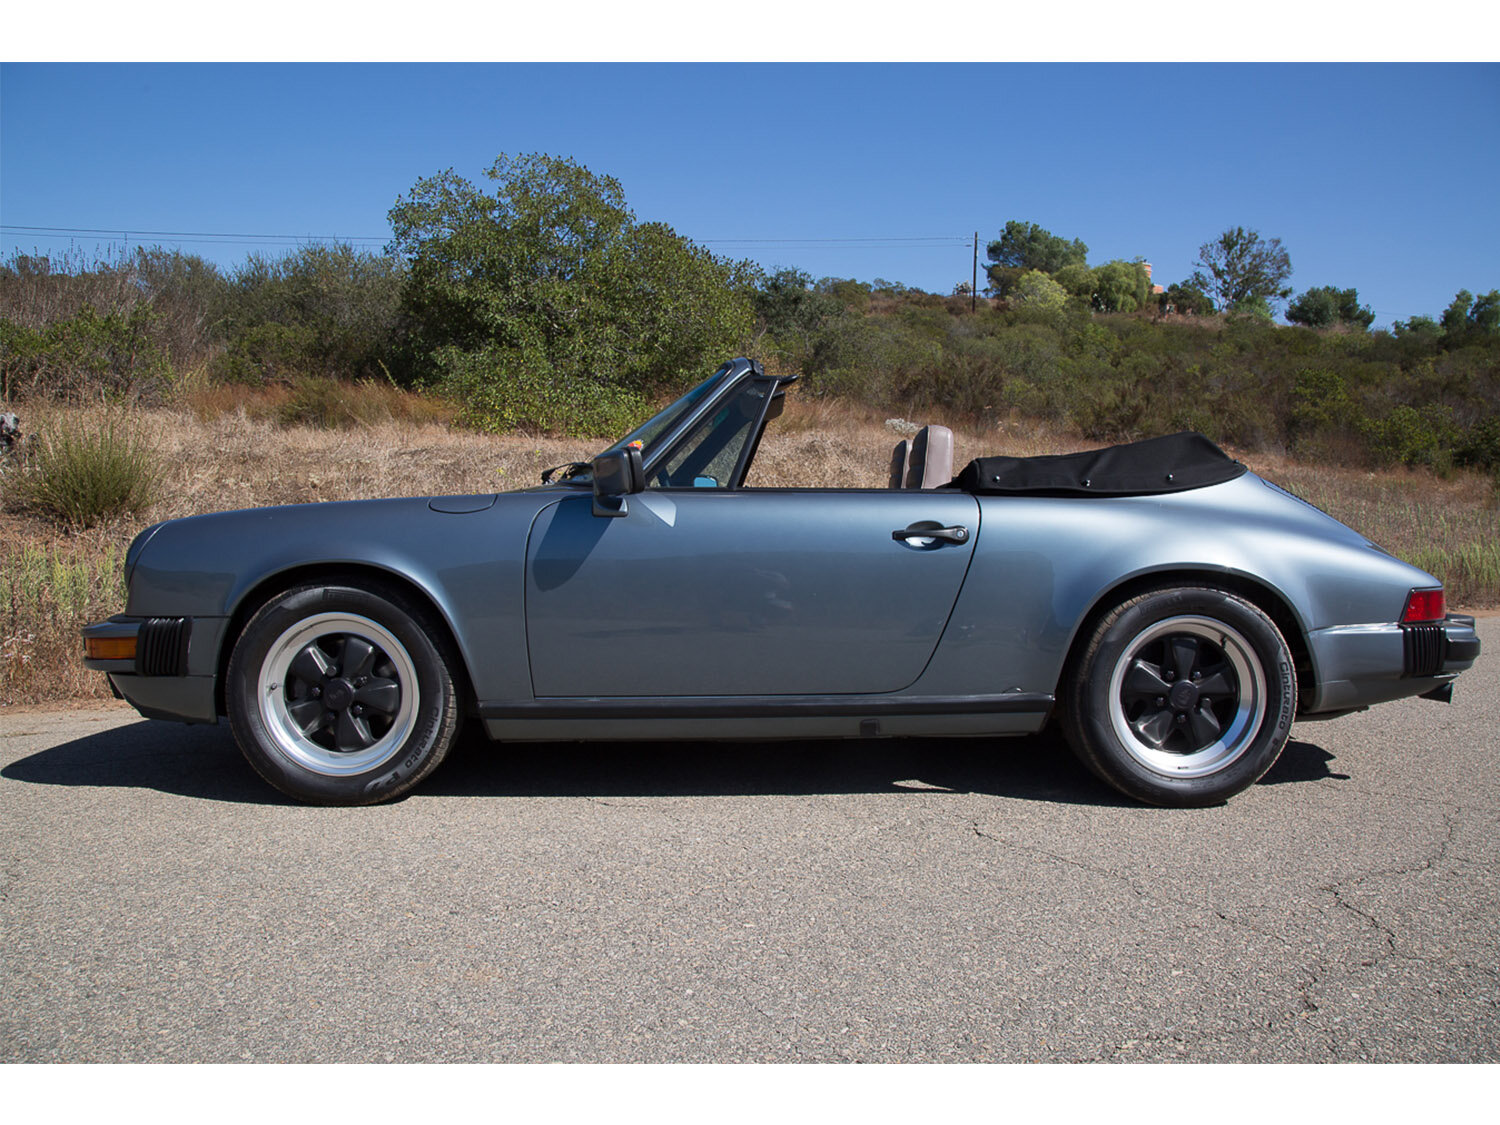 1984-carrera-cabriolet-slate-blue-911-sc-for-sale-makellos-classics_0001s_0000s_0012_1B7A6633.jpg